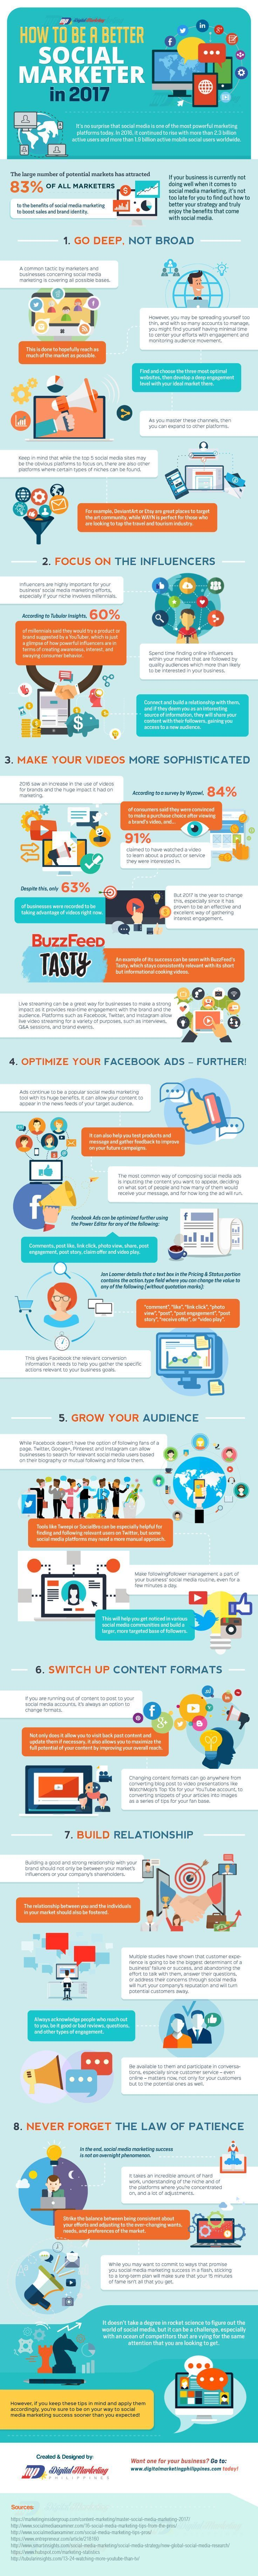 8 Essential Steps to Improve Your Social Media Marketing Efforts [Infographic] AND Take this Free Full Lenght Video Training on HOW to Start an Online Business #homeimprovementagencyjobs